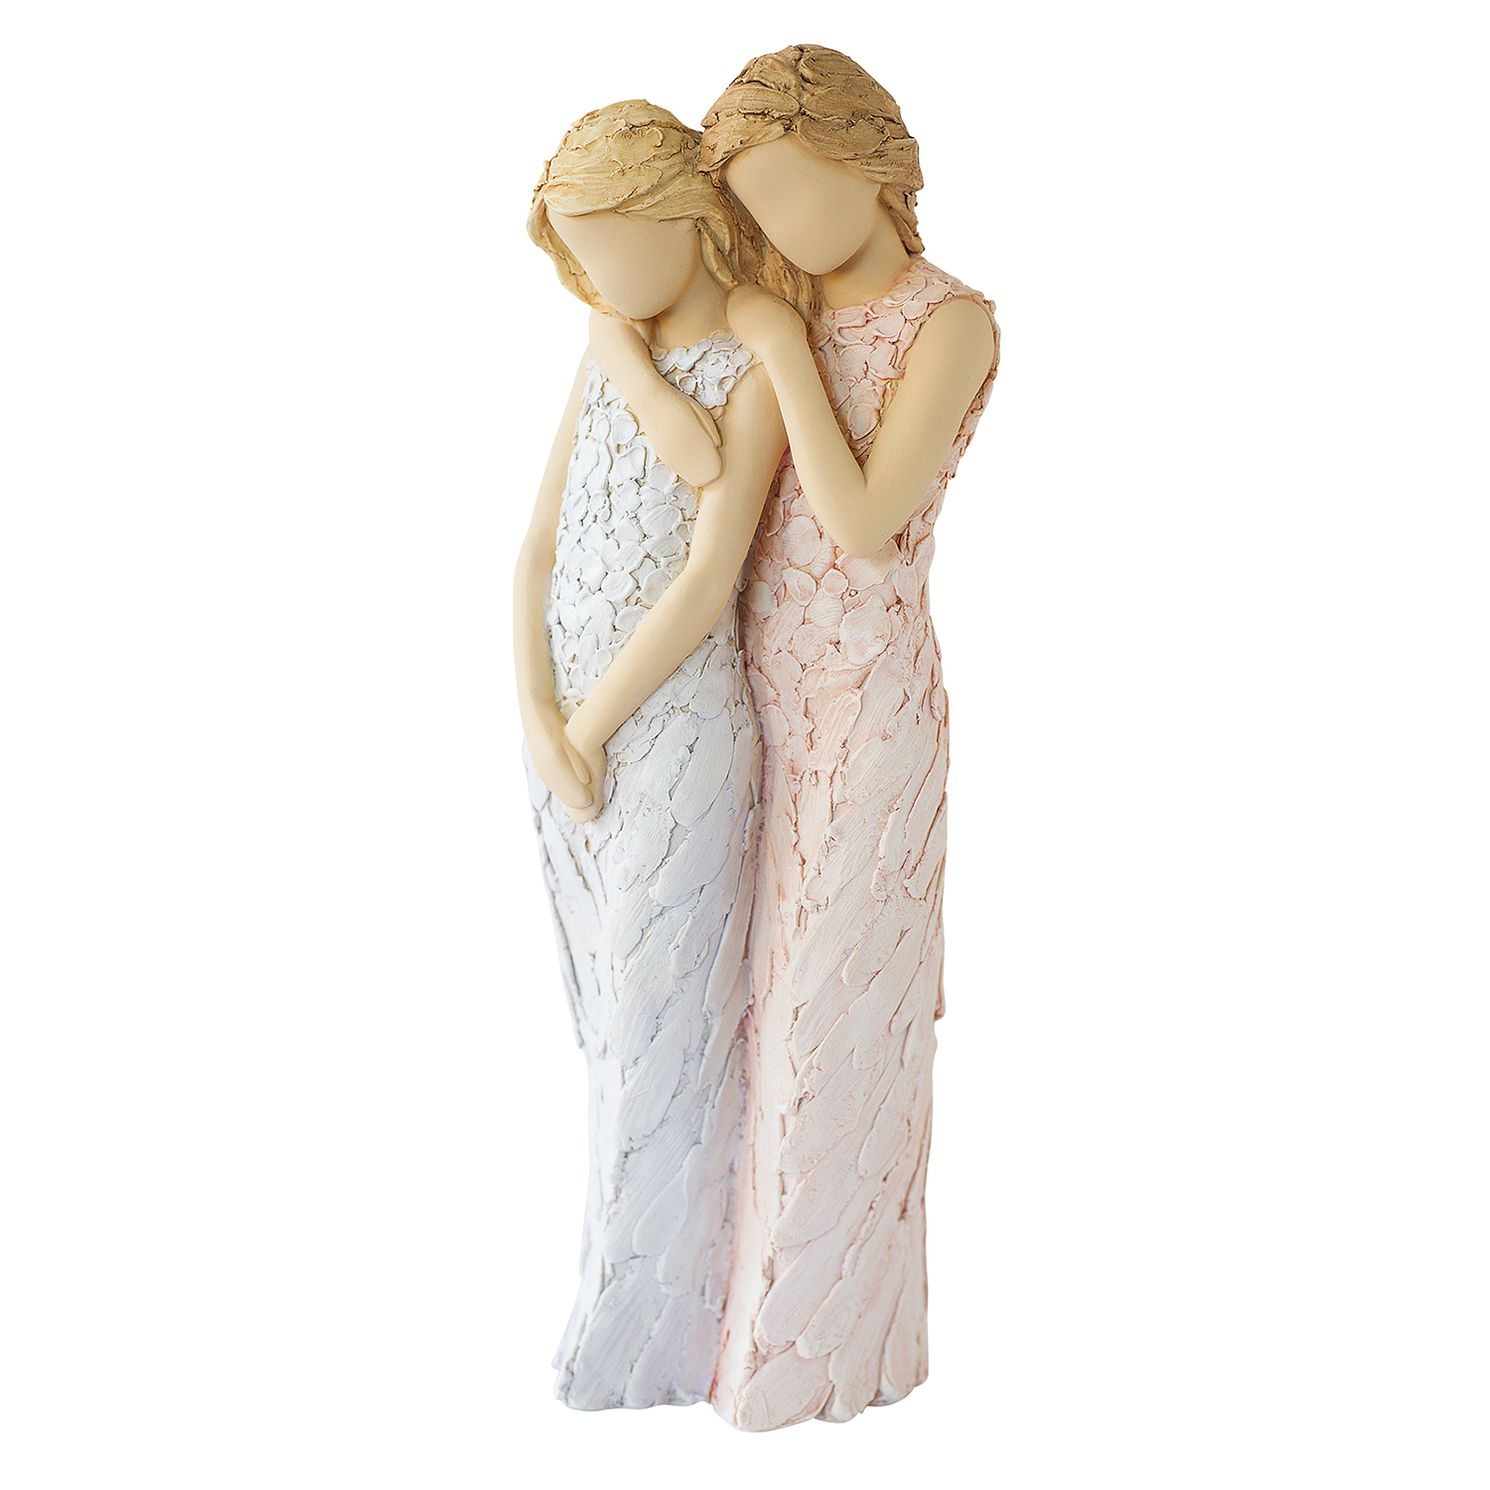 More Than Words By Your Side Figurine - Product number 3432696